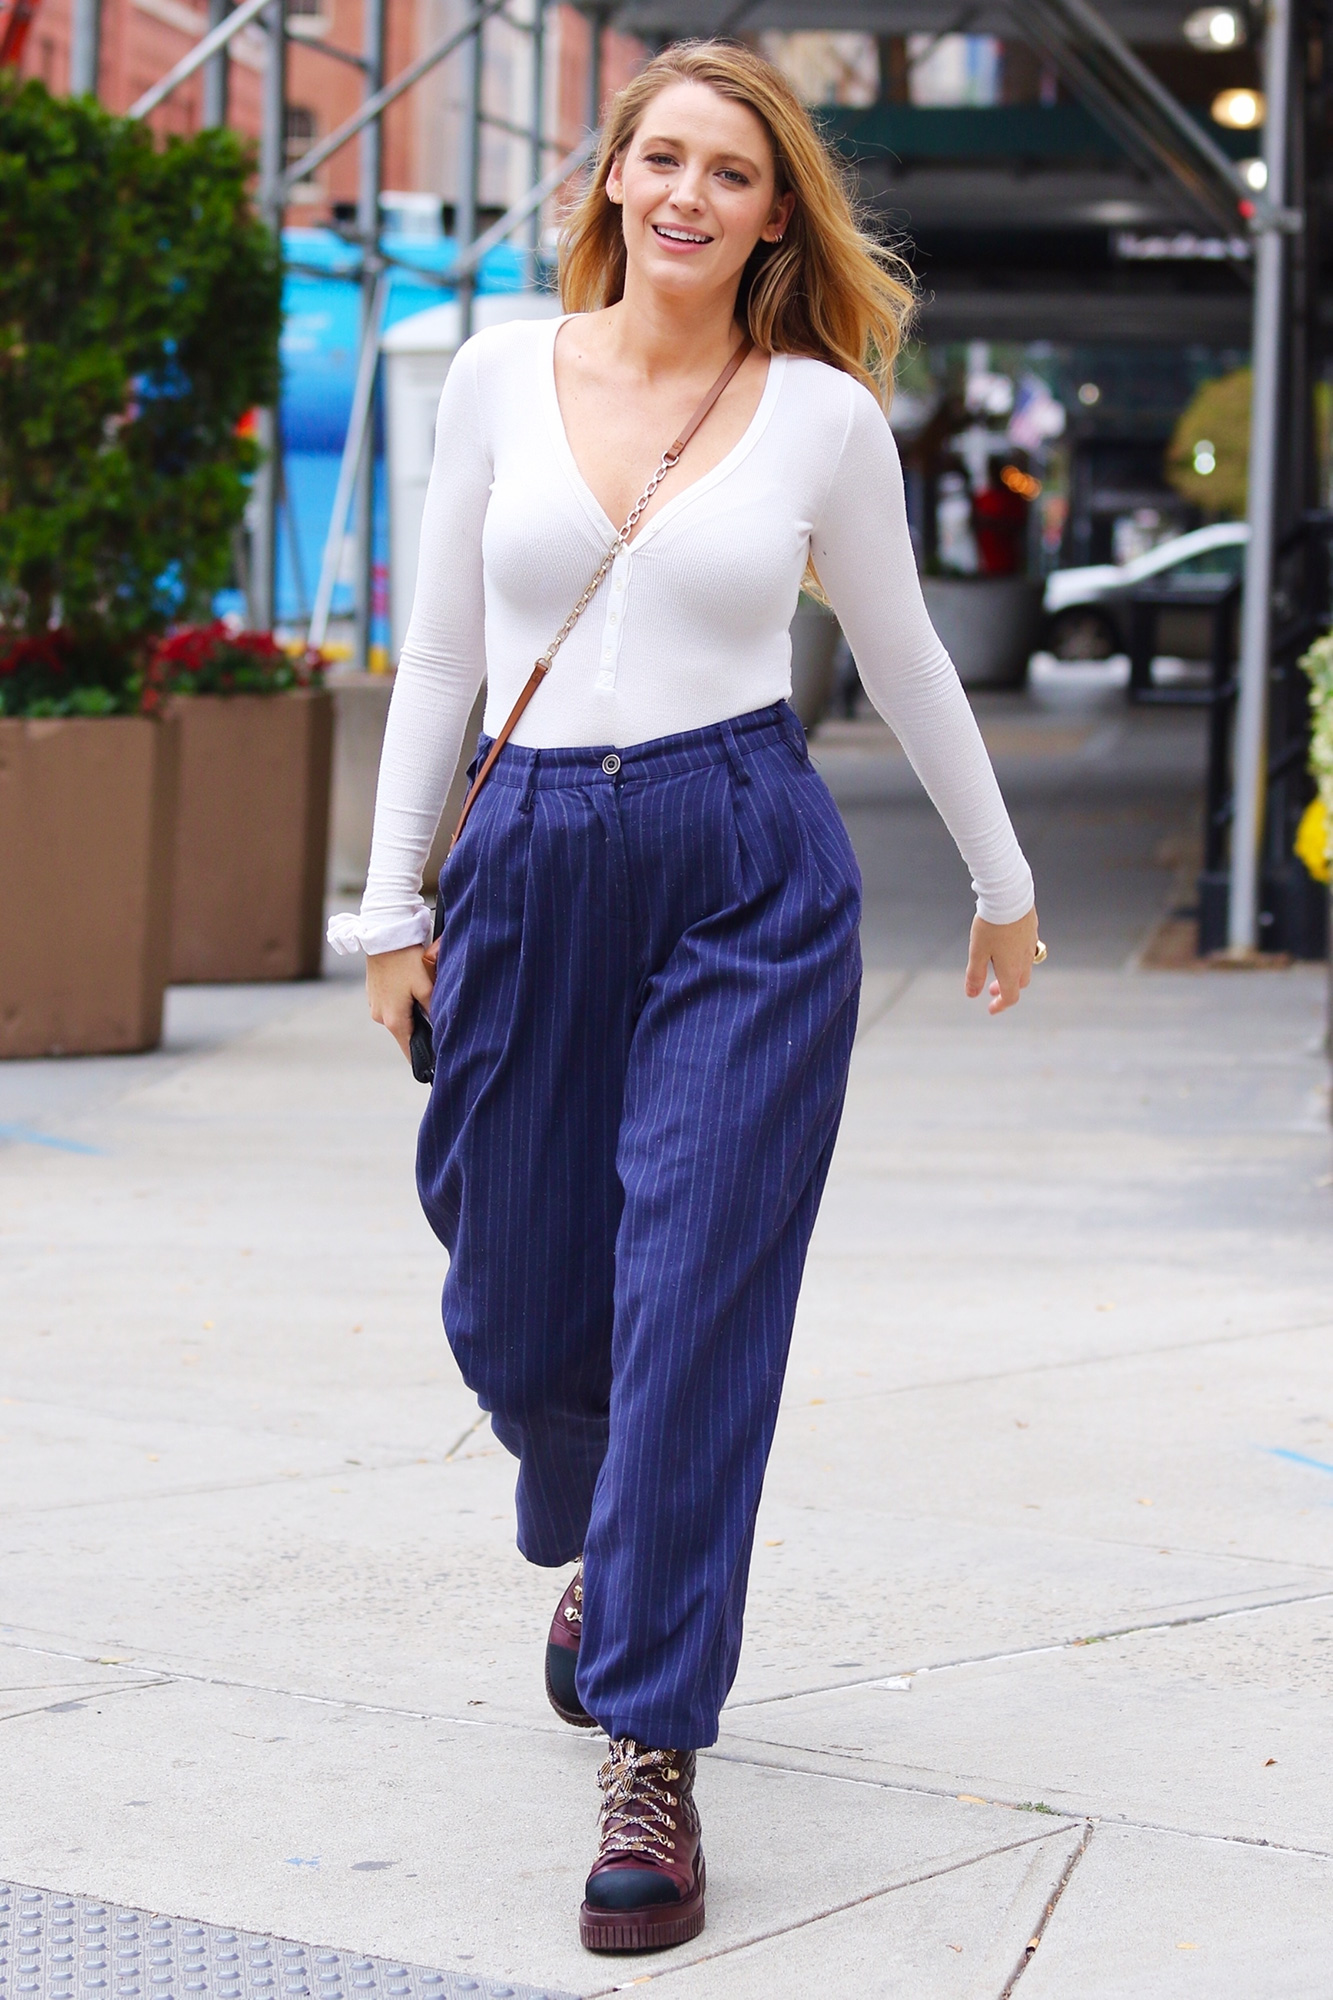 Blake Lively looks stylish and is all smiles while running errands around Manhattan's Downtown area.